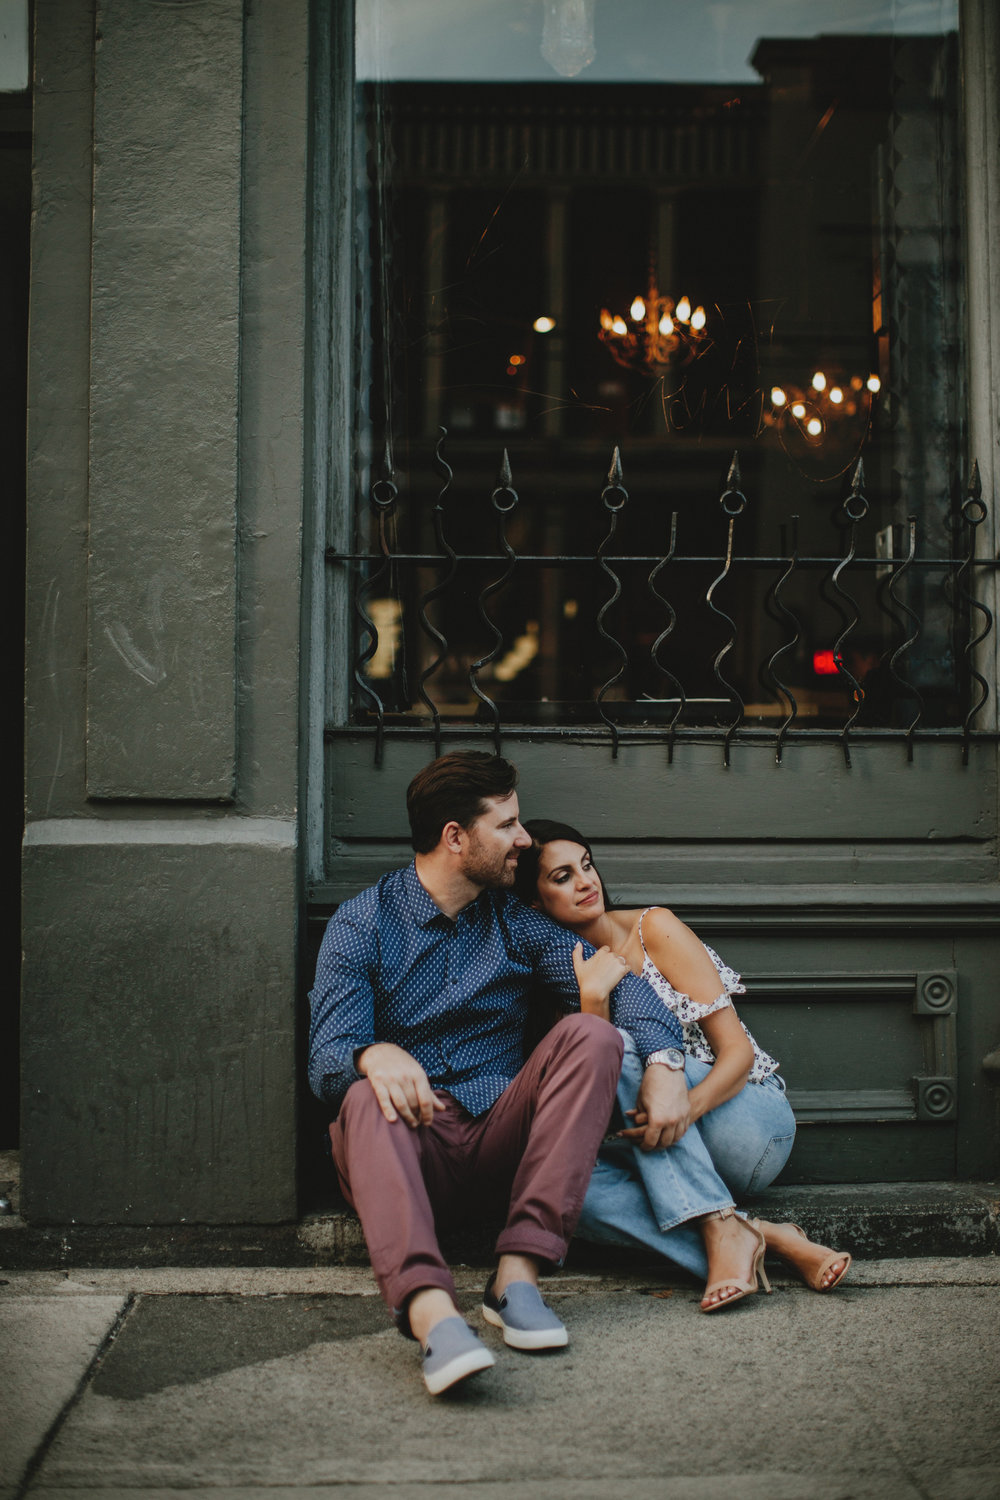 Marla-Mike-Engagement-Squarespace-19.jpg